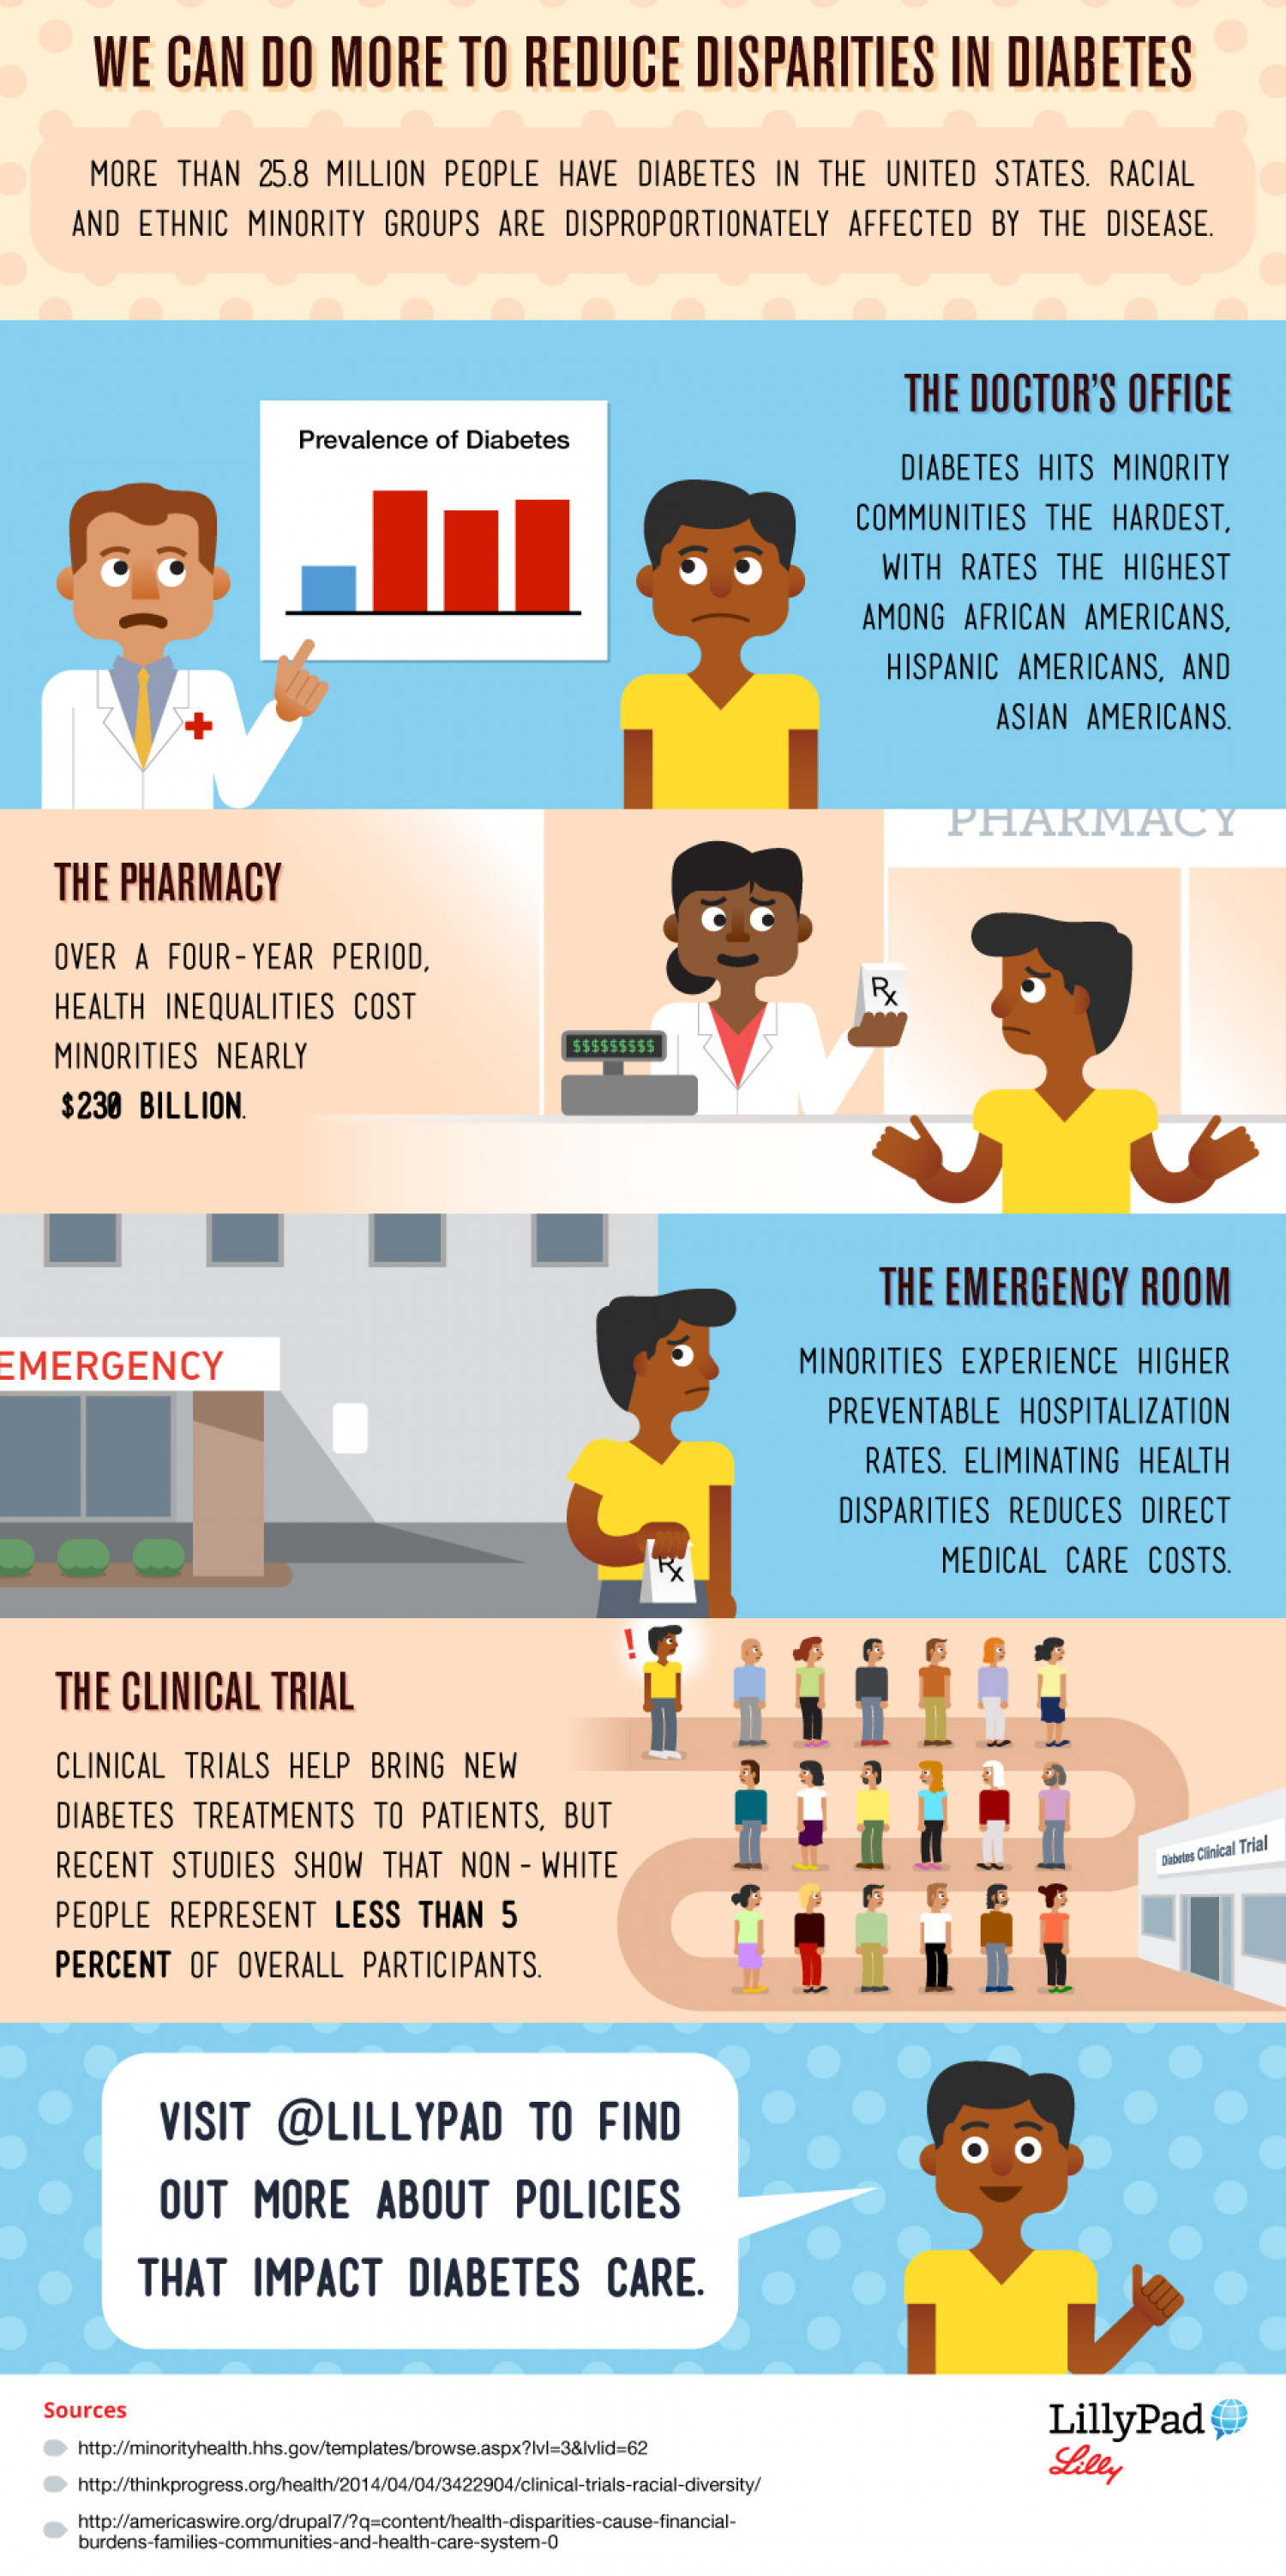 Reducing Disparities in Diabetes Infographic